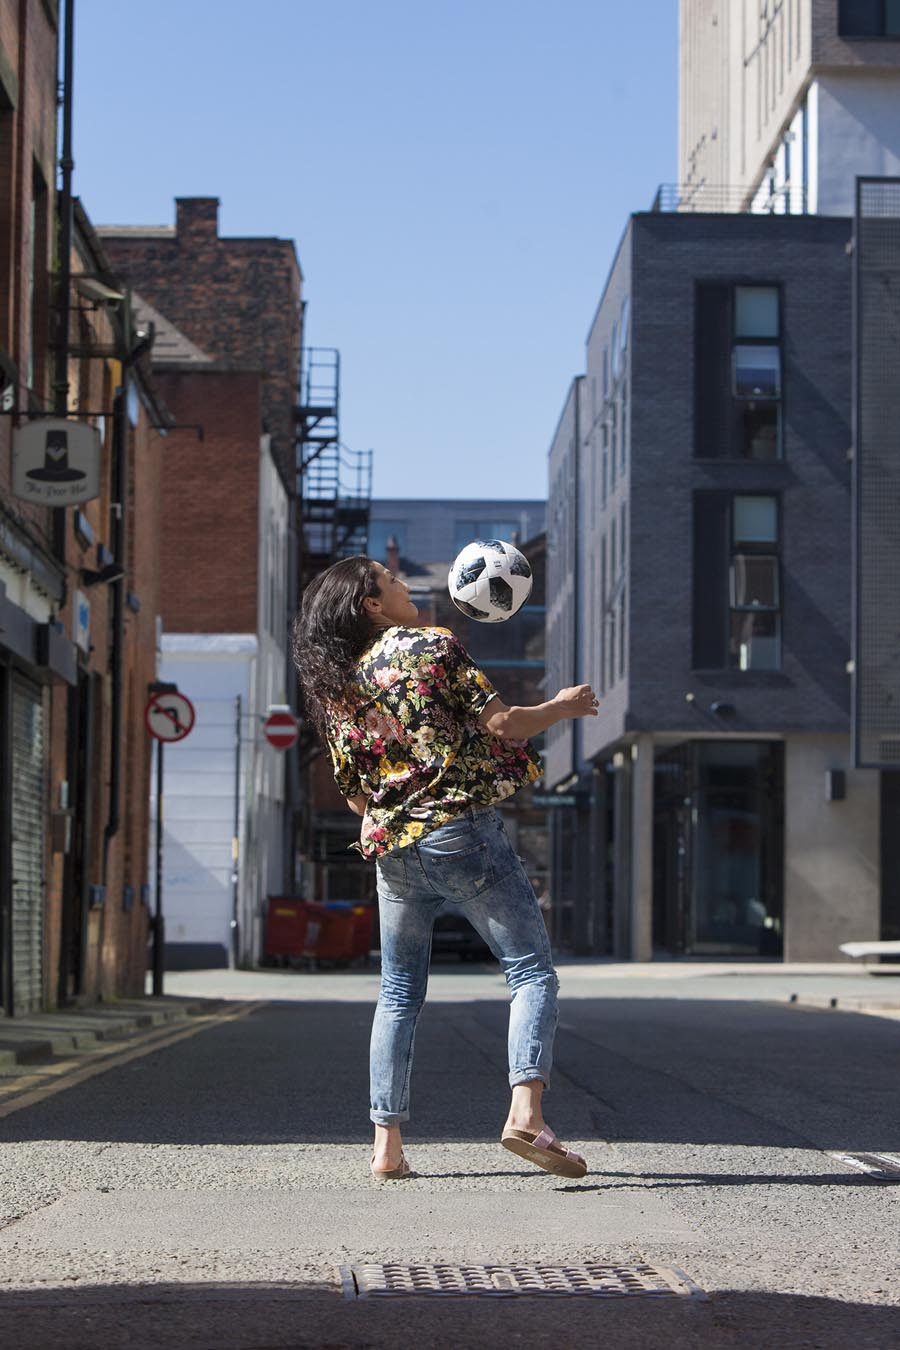 A portrait photograph of footballer Nadia Nadim.  Photographed for Scandinavian Airlines